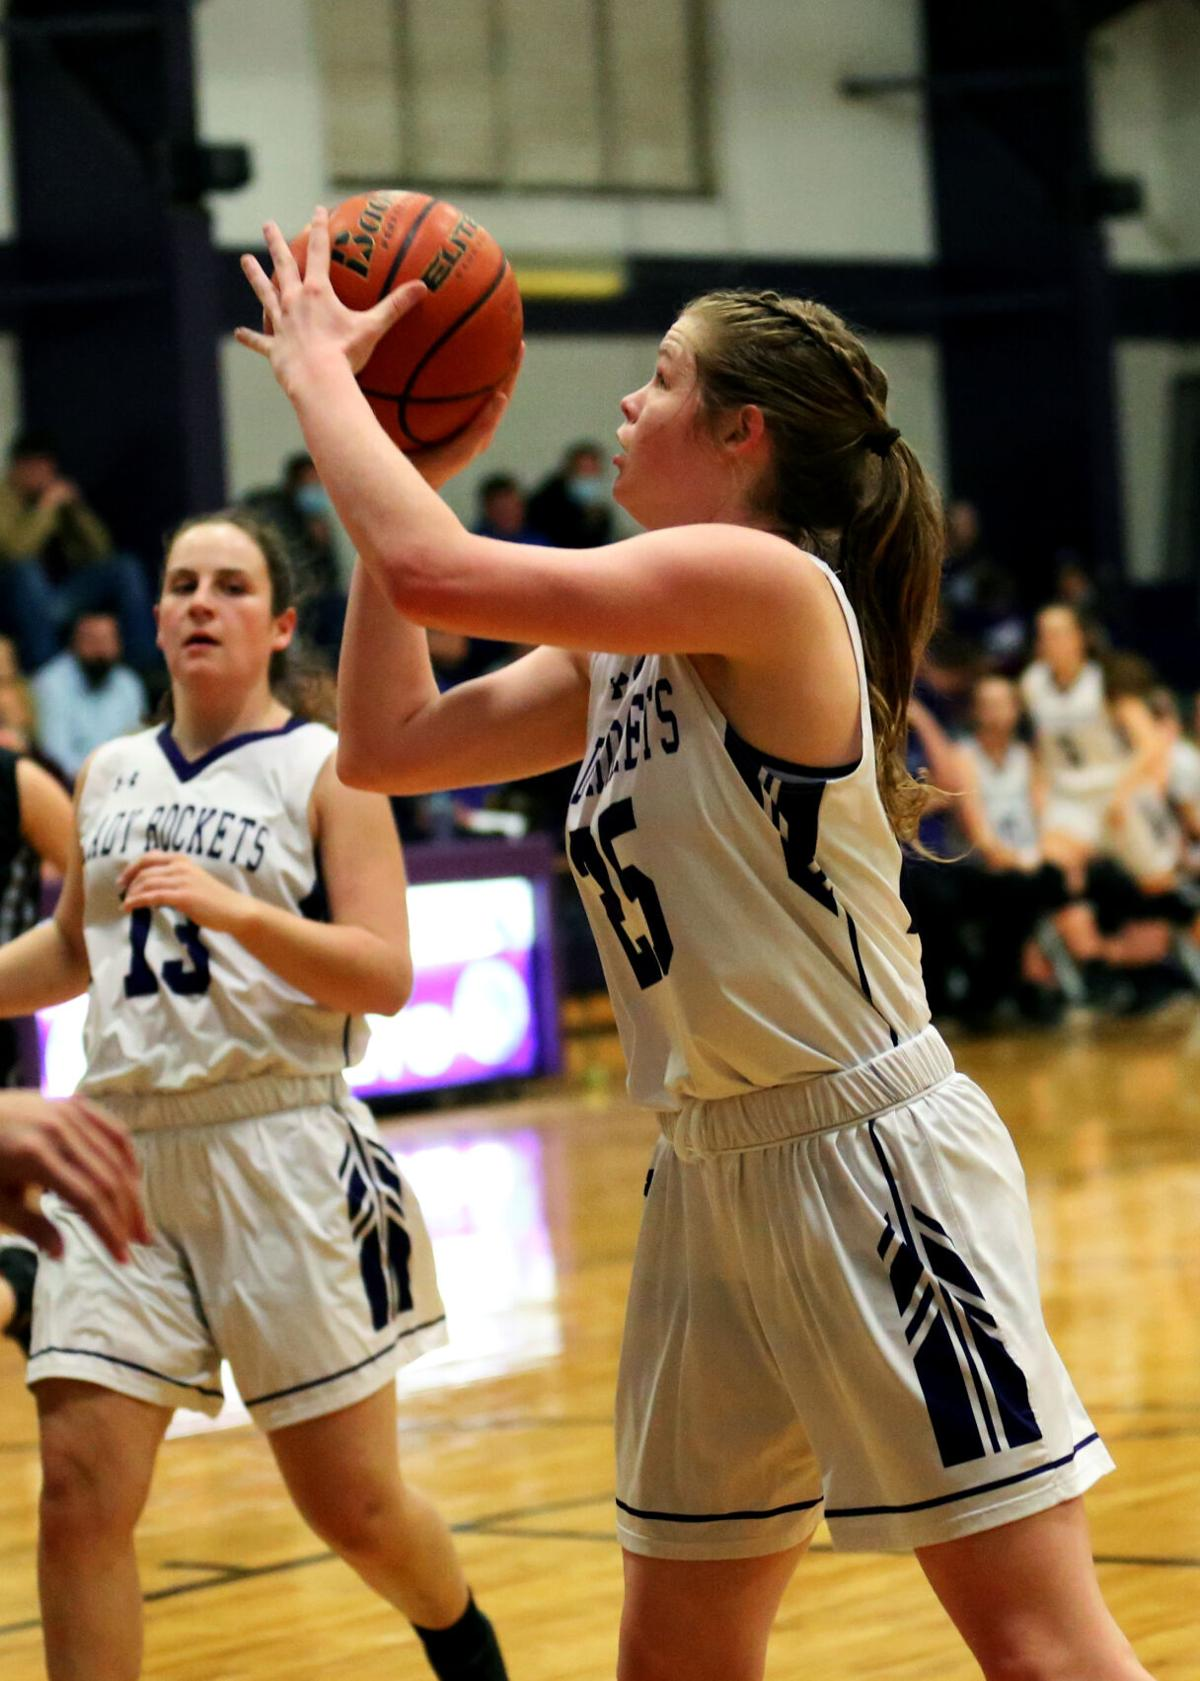 Albany-Holden girls-Camille Comish